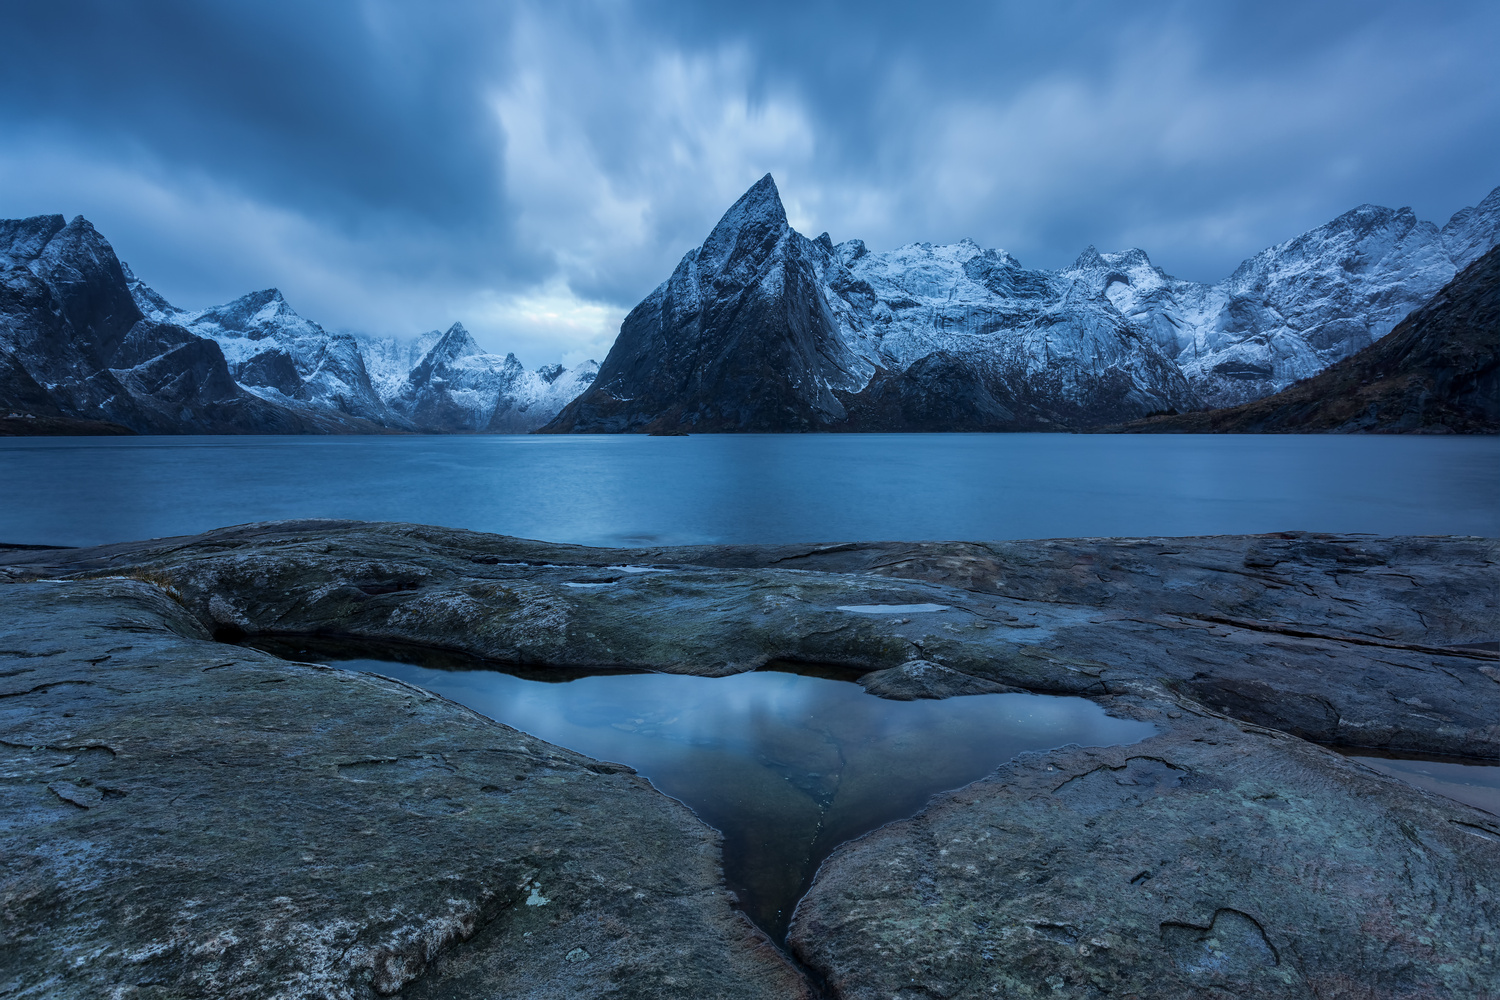 Lofoten Blues by Rickard Eriksson